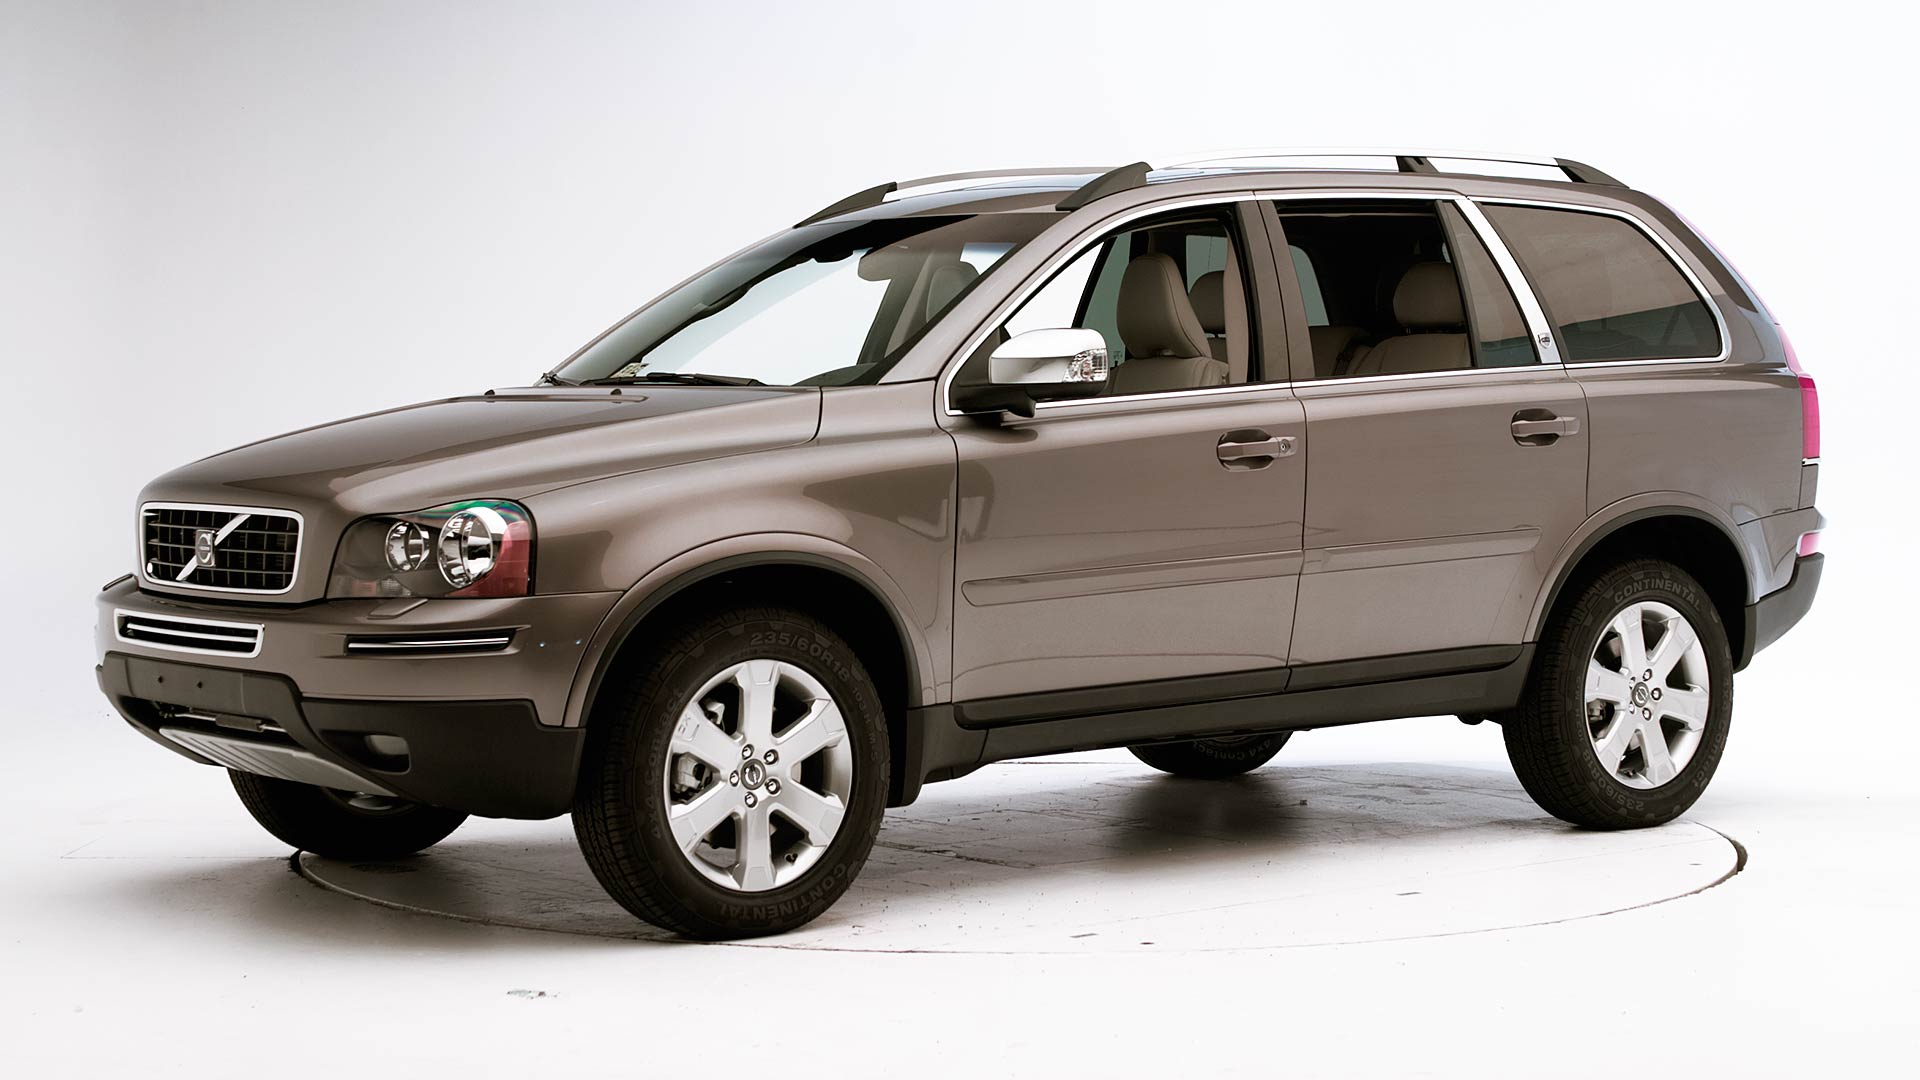 2010 Volvo XC90 4-door SUV